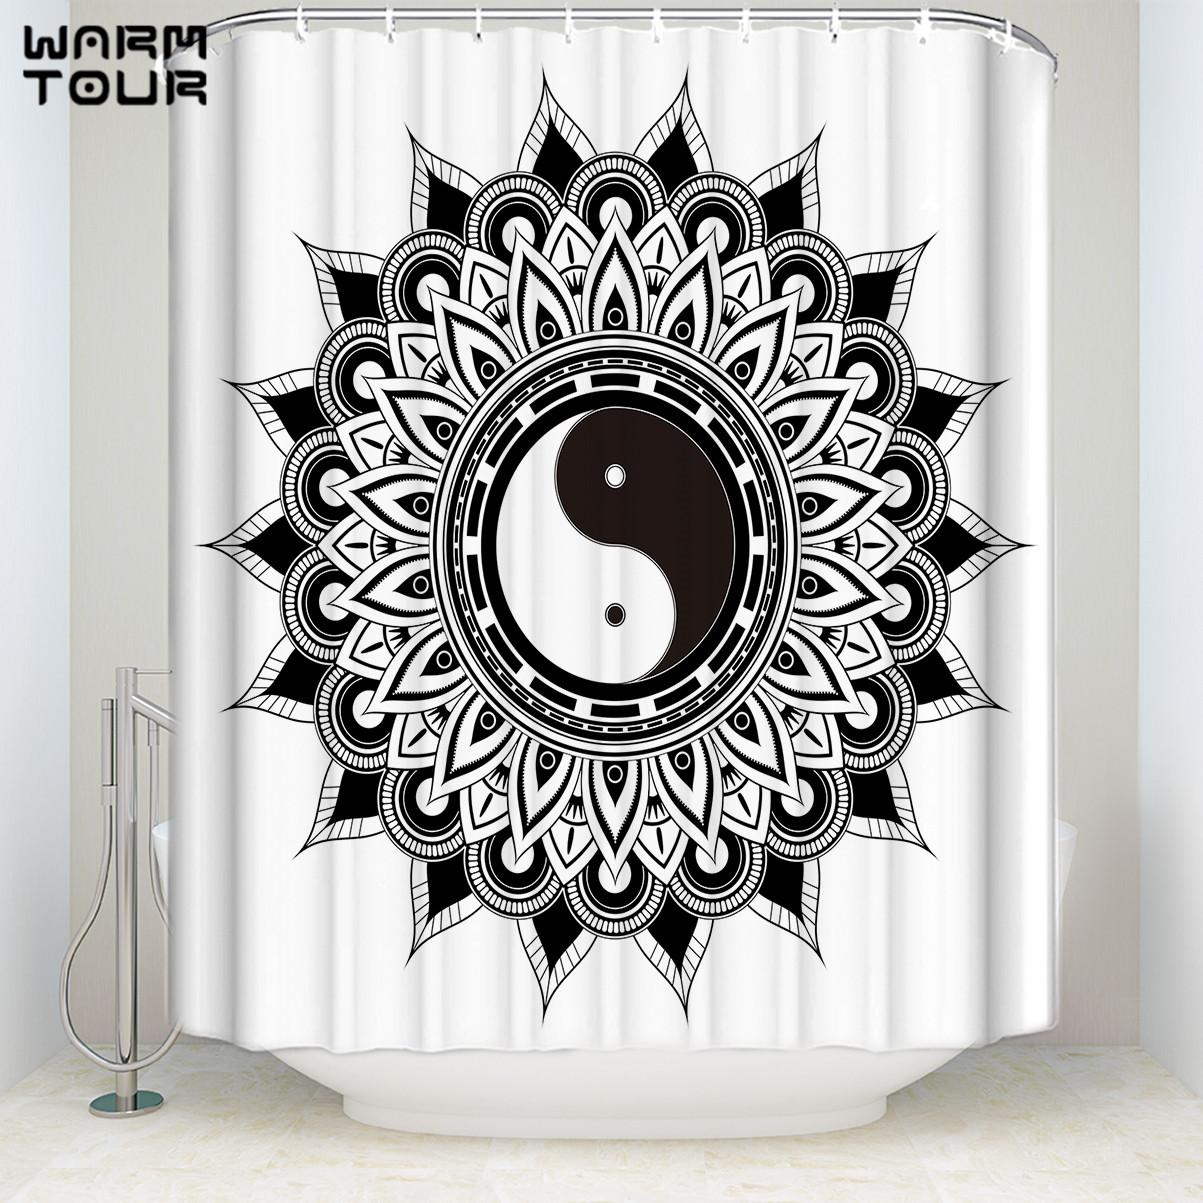 2019 Mandala Bohemian Feather Waterproof Shower Curtain Hippie Boho Decorations Geometric Decor Polyester Bathroom Set 71x71 From Caley 3345